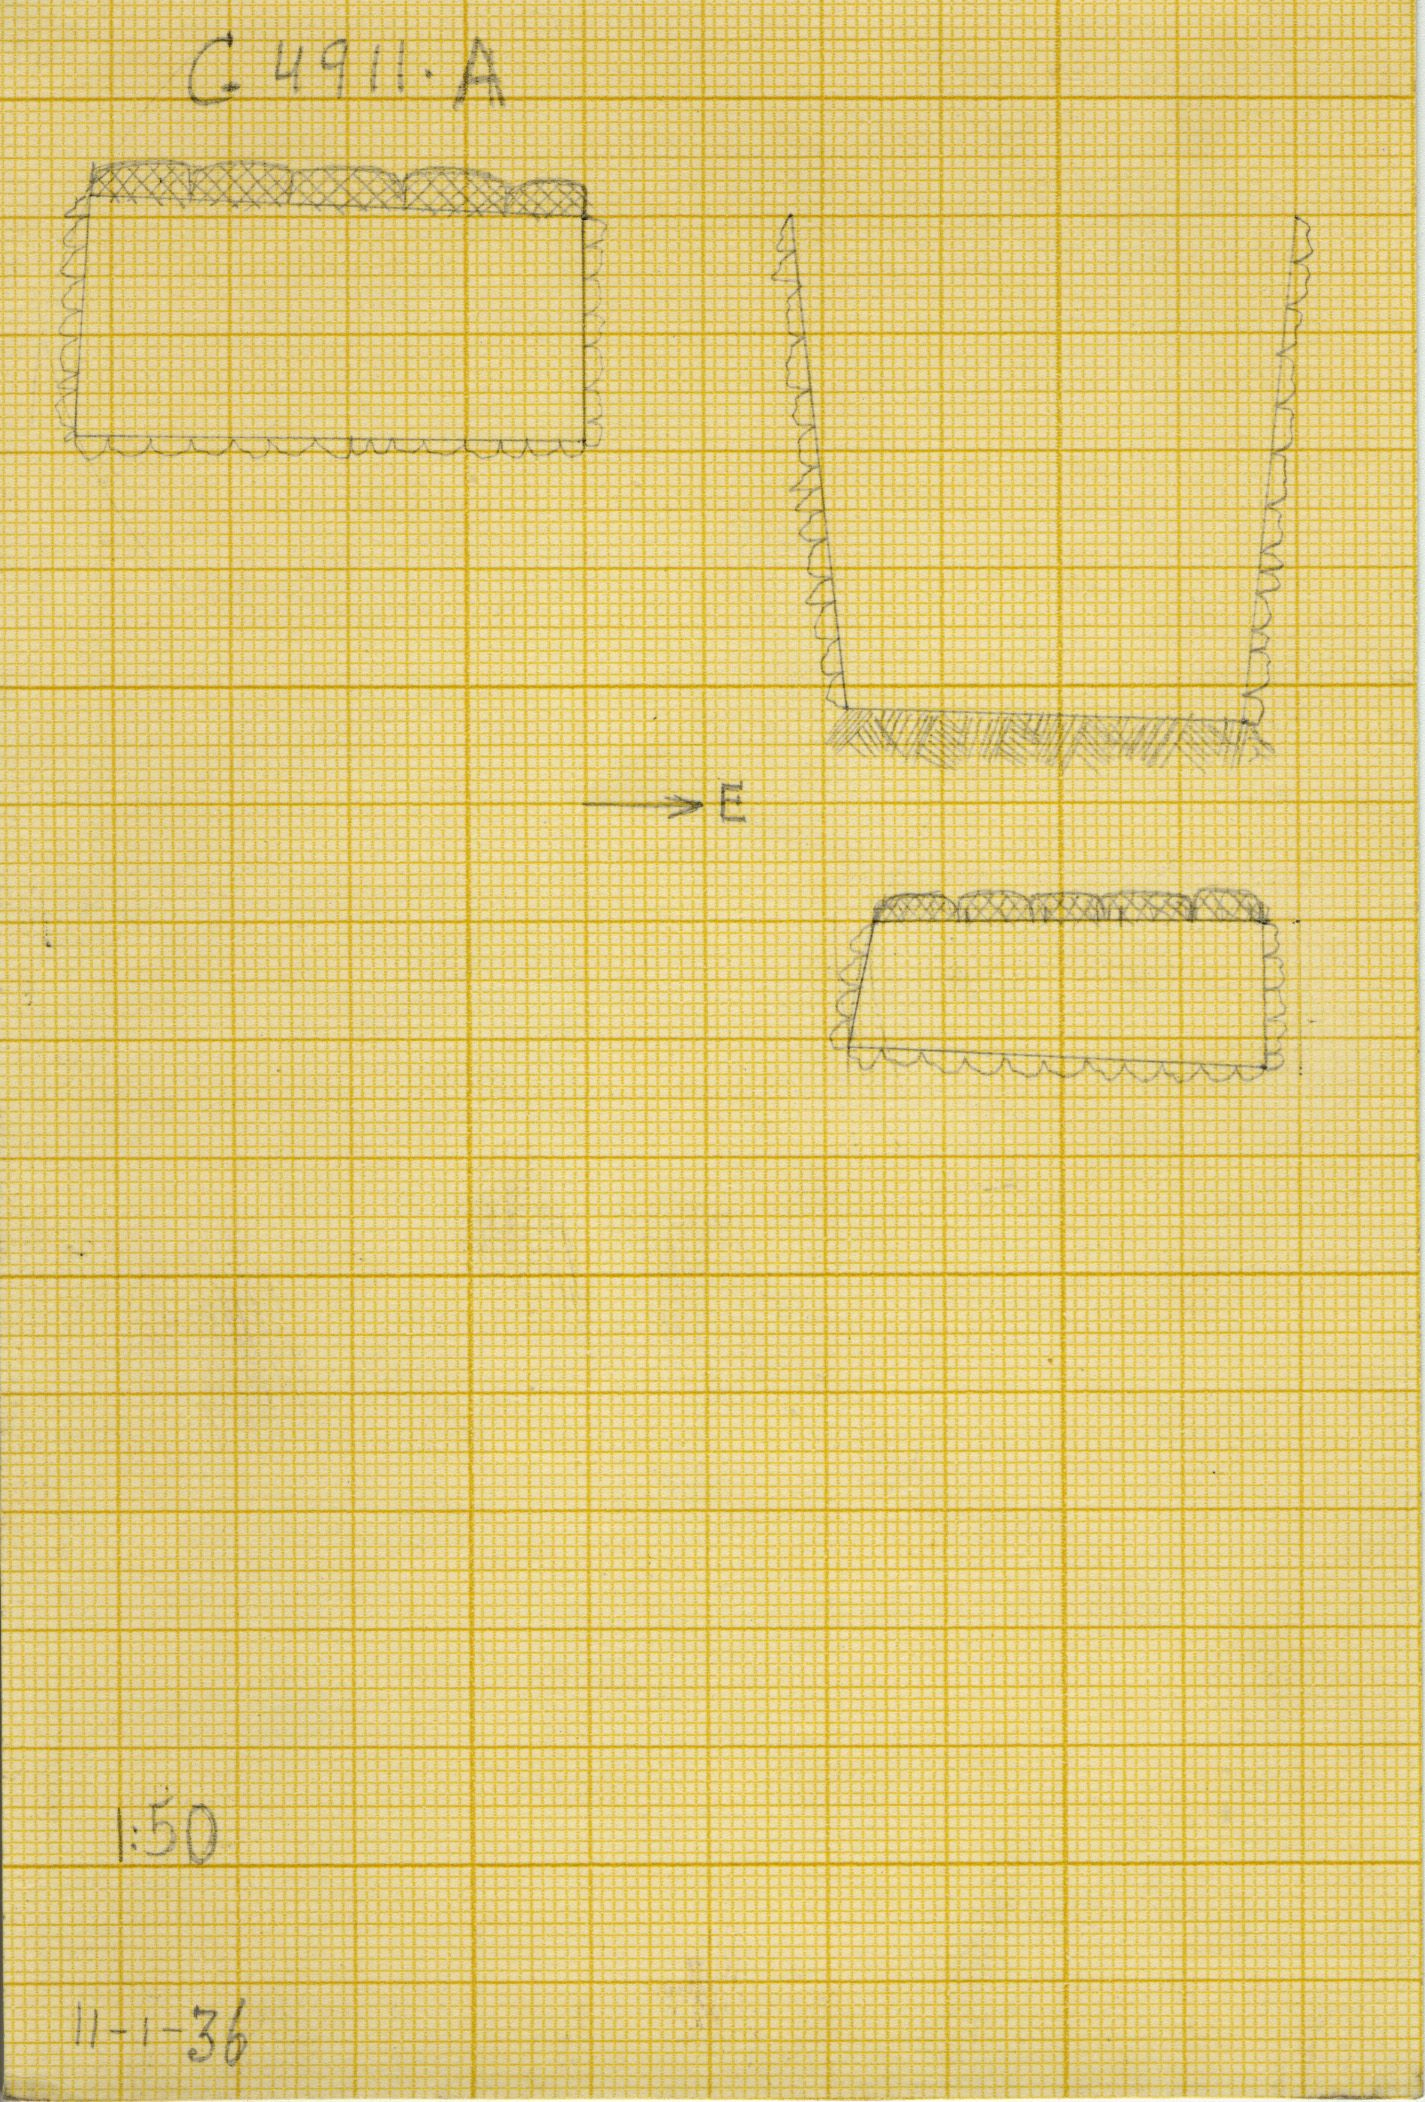 Maps and plans: G 4911, Shaft A